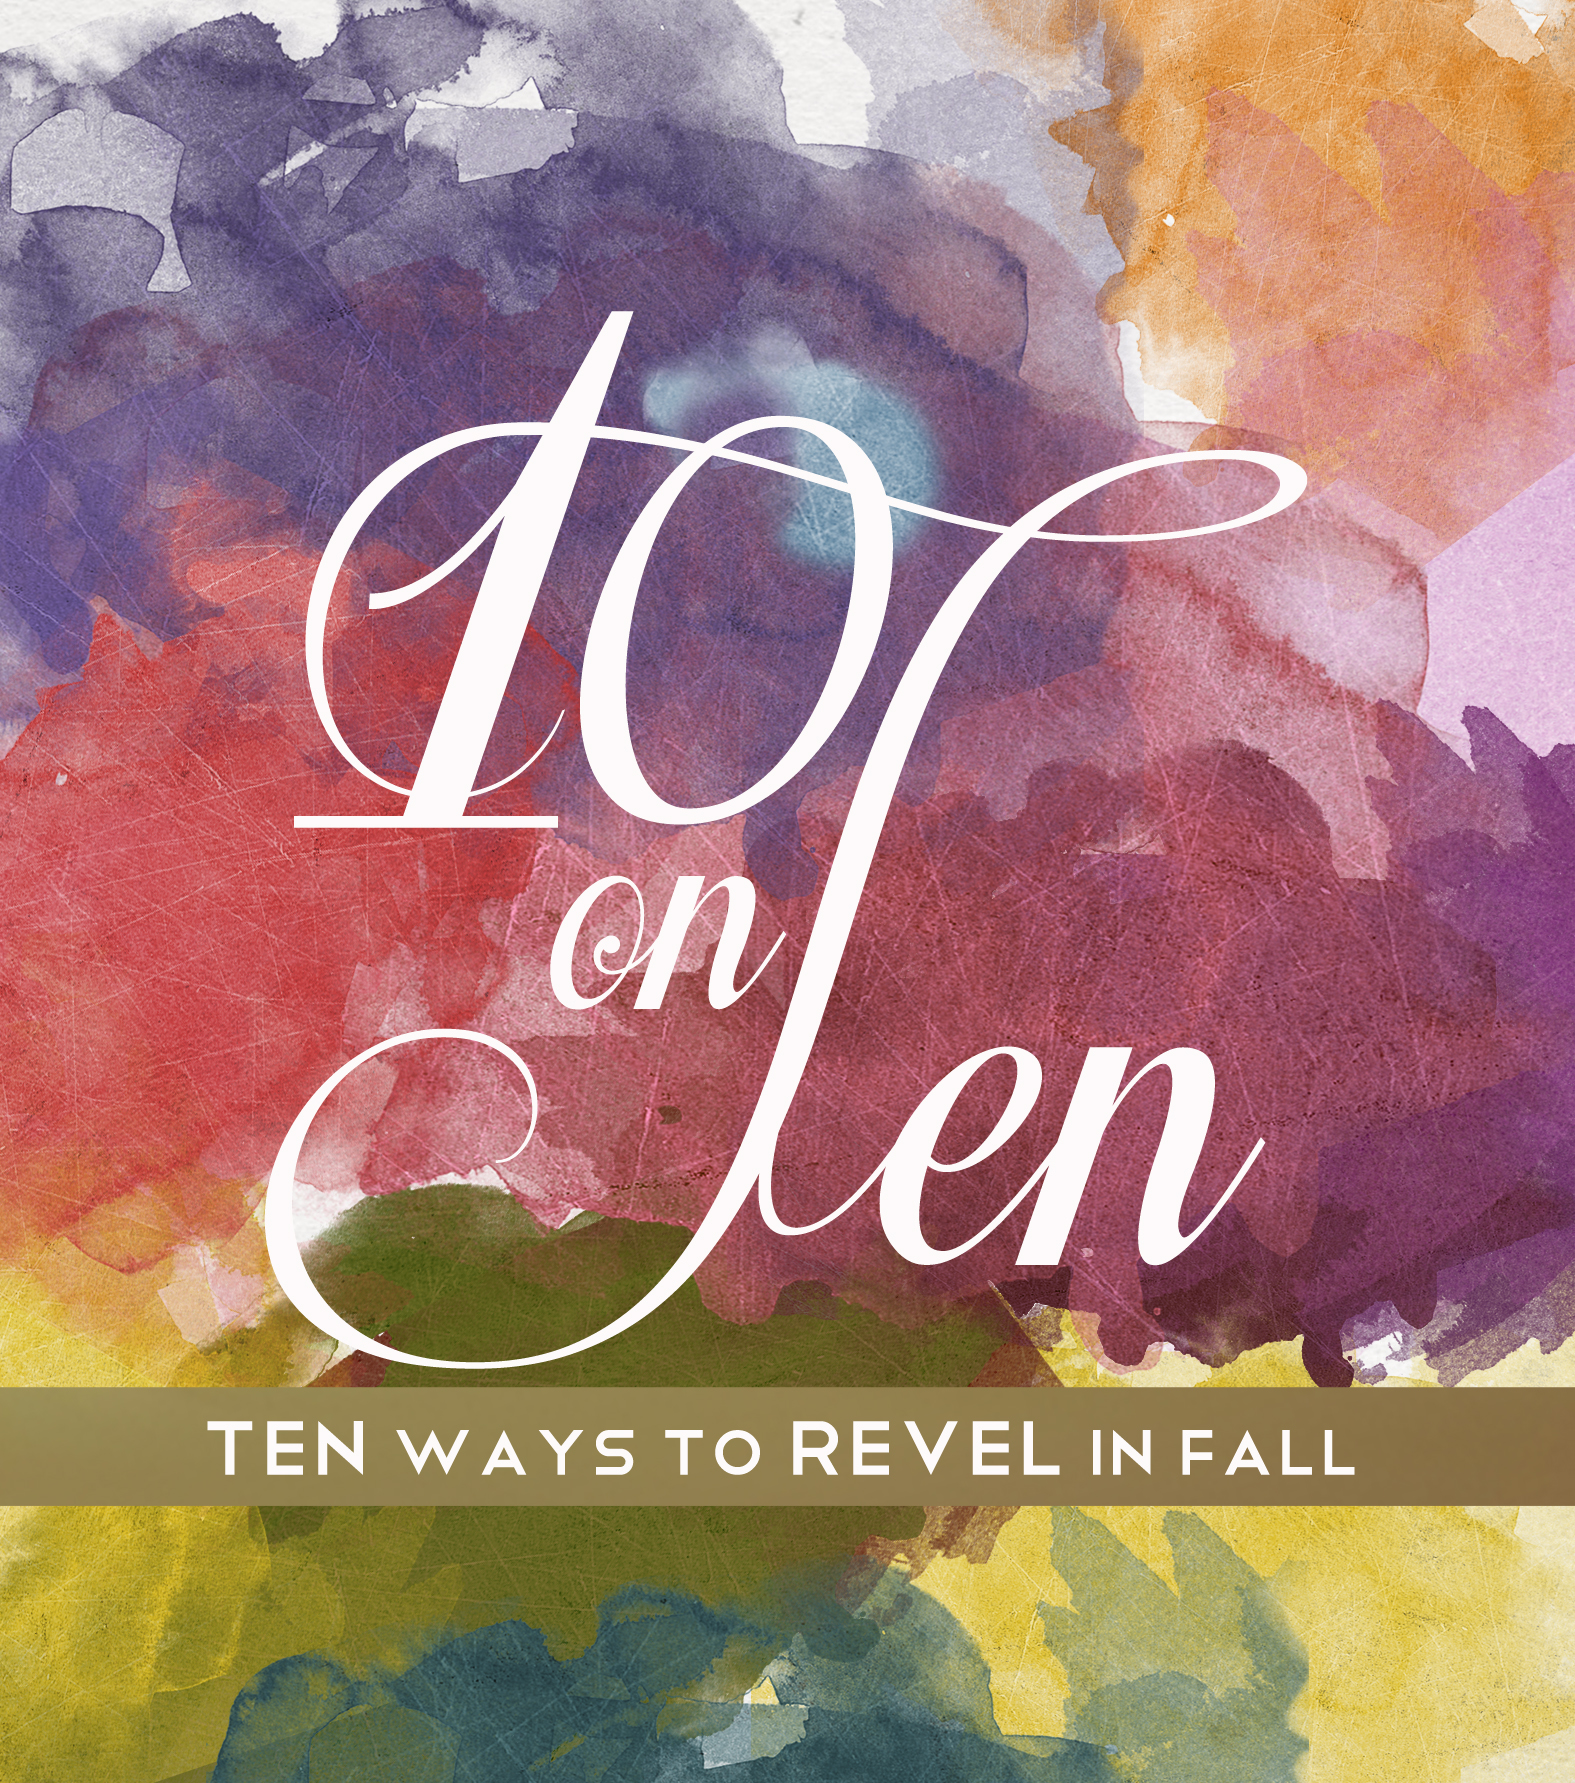 10 on Ten | 10 Glorious Ways to REVEL in Fall by REVELphoto